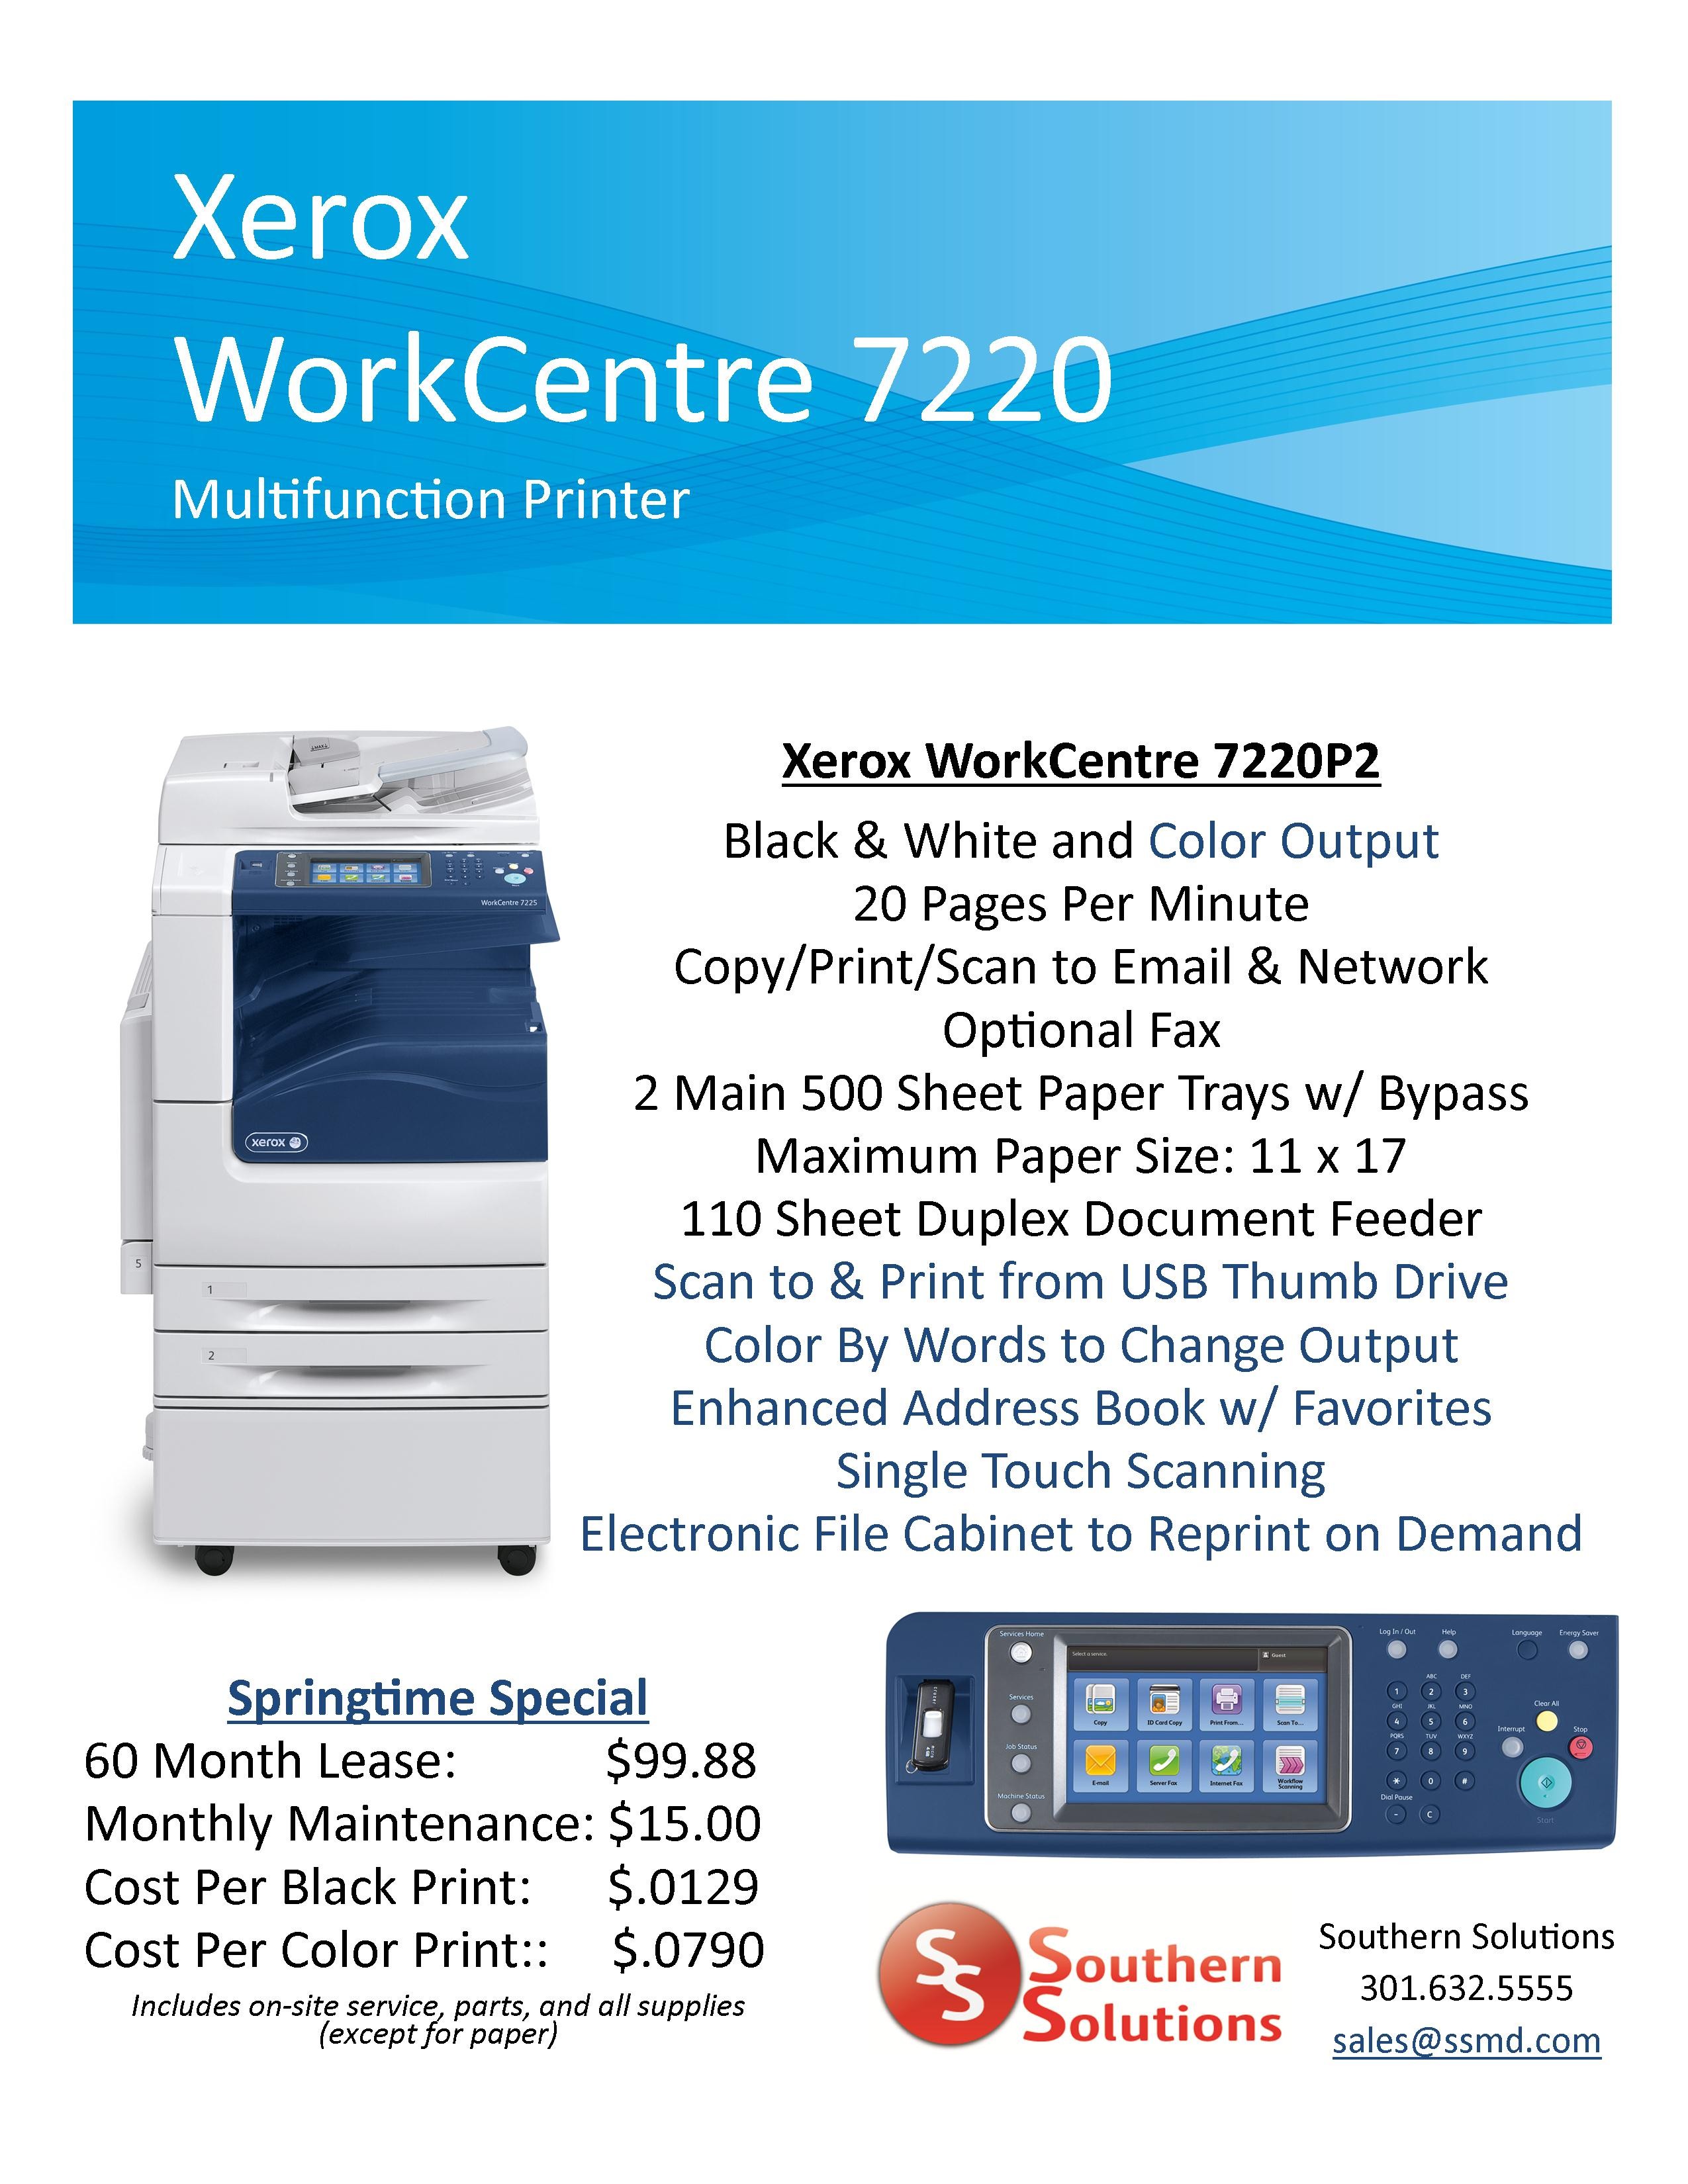 WorkCentre 7220 Springtime Special Website 5.14.13